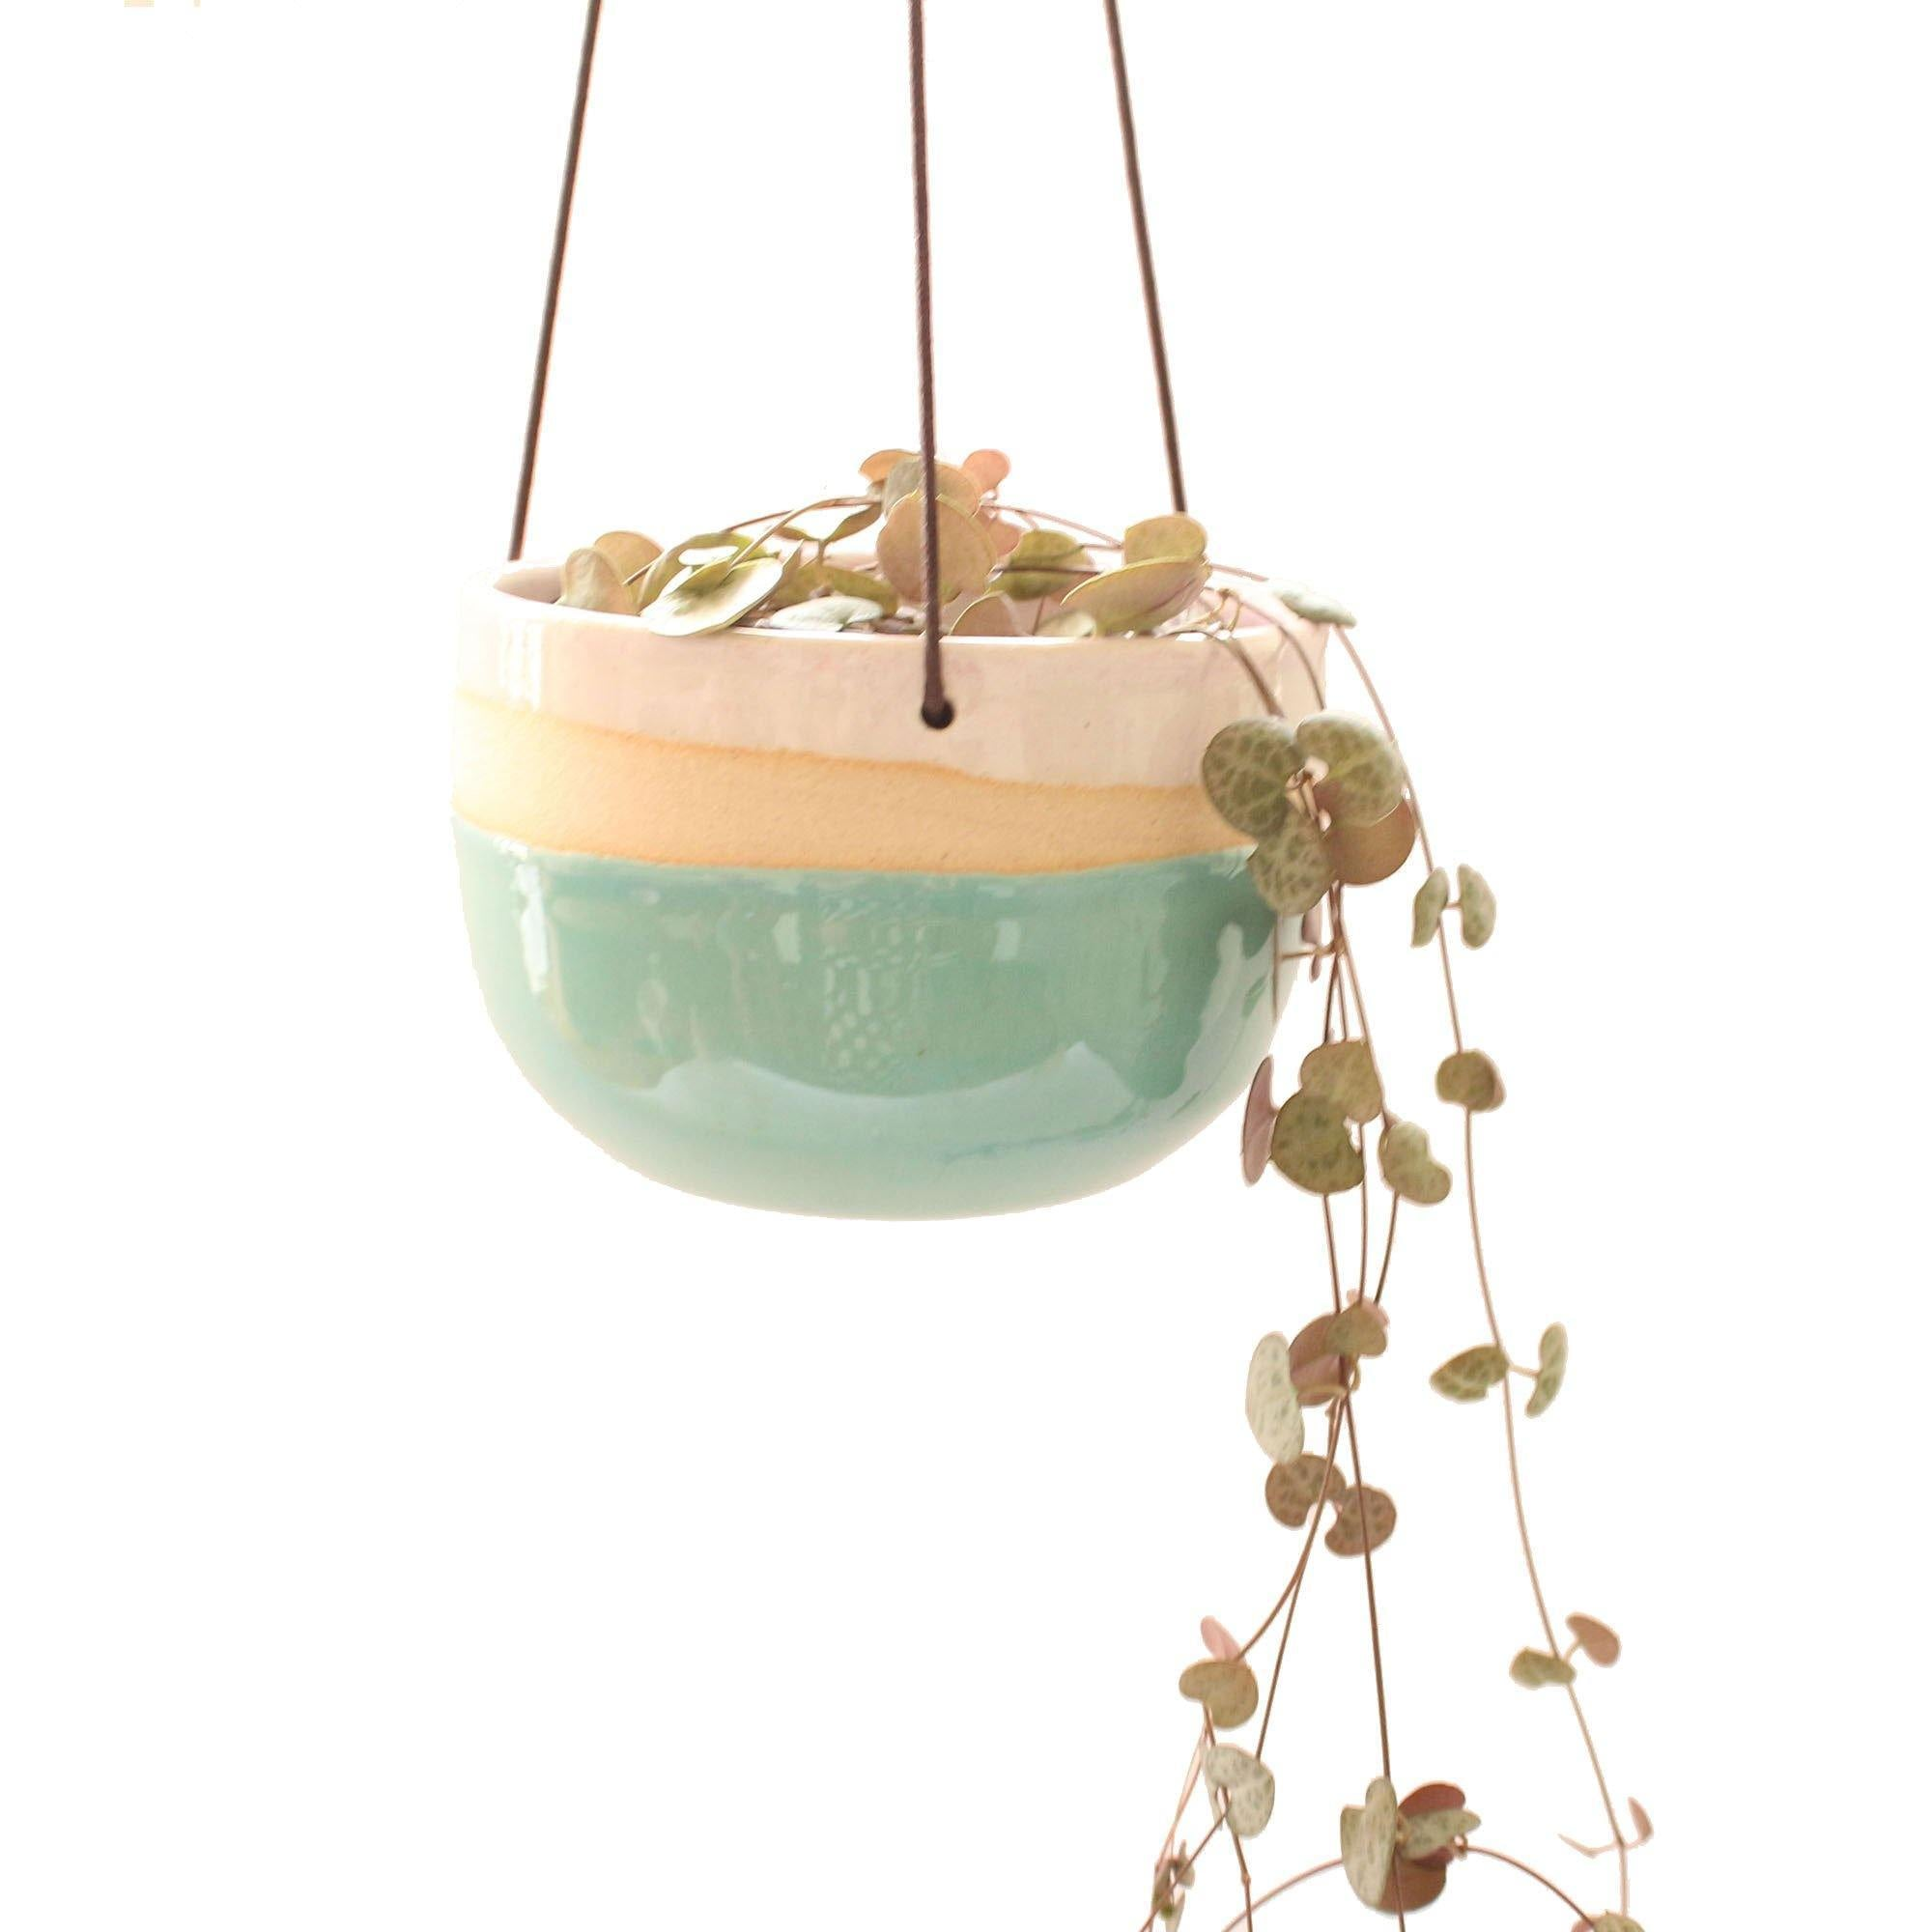 Handmade Hanging Ceramic Planter Turquoise And Pink, Lawn & Garden by Insideout